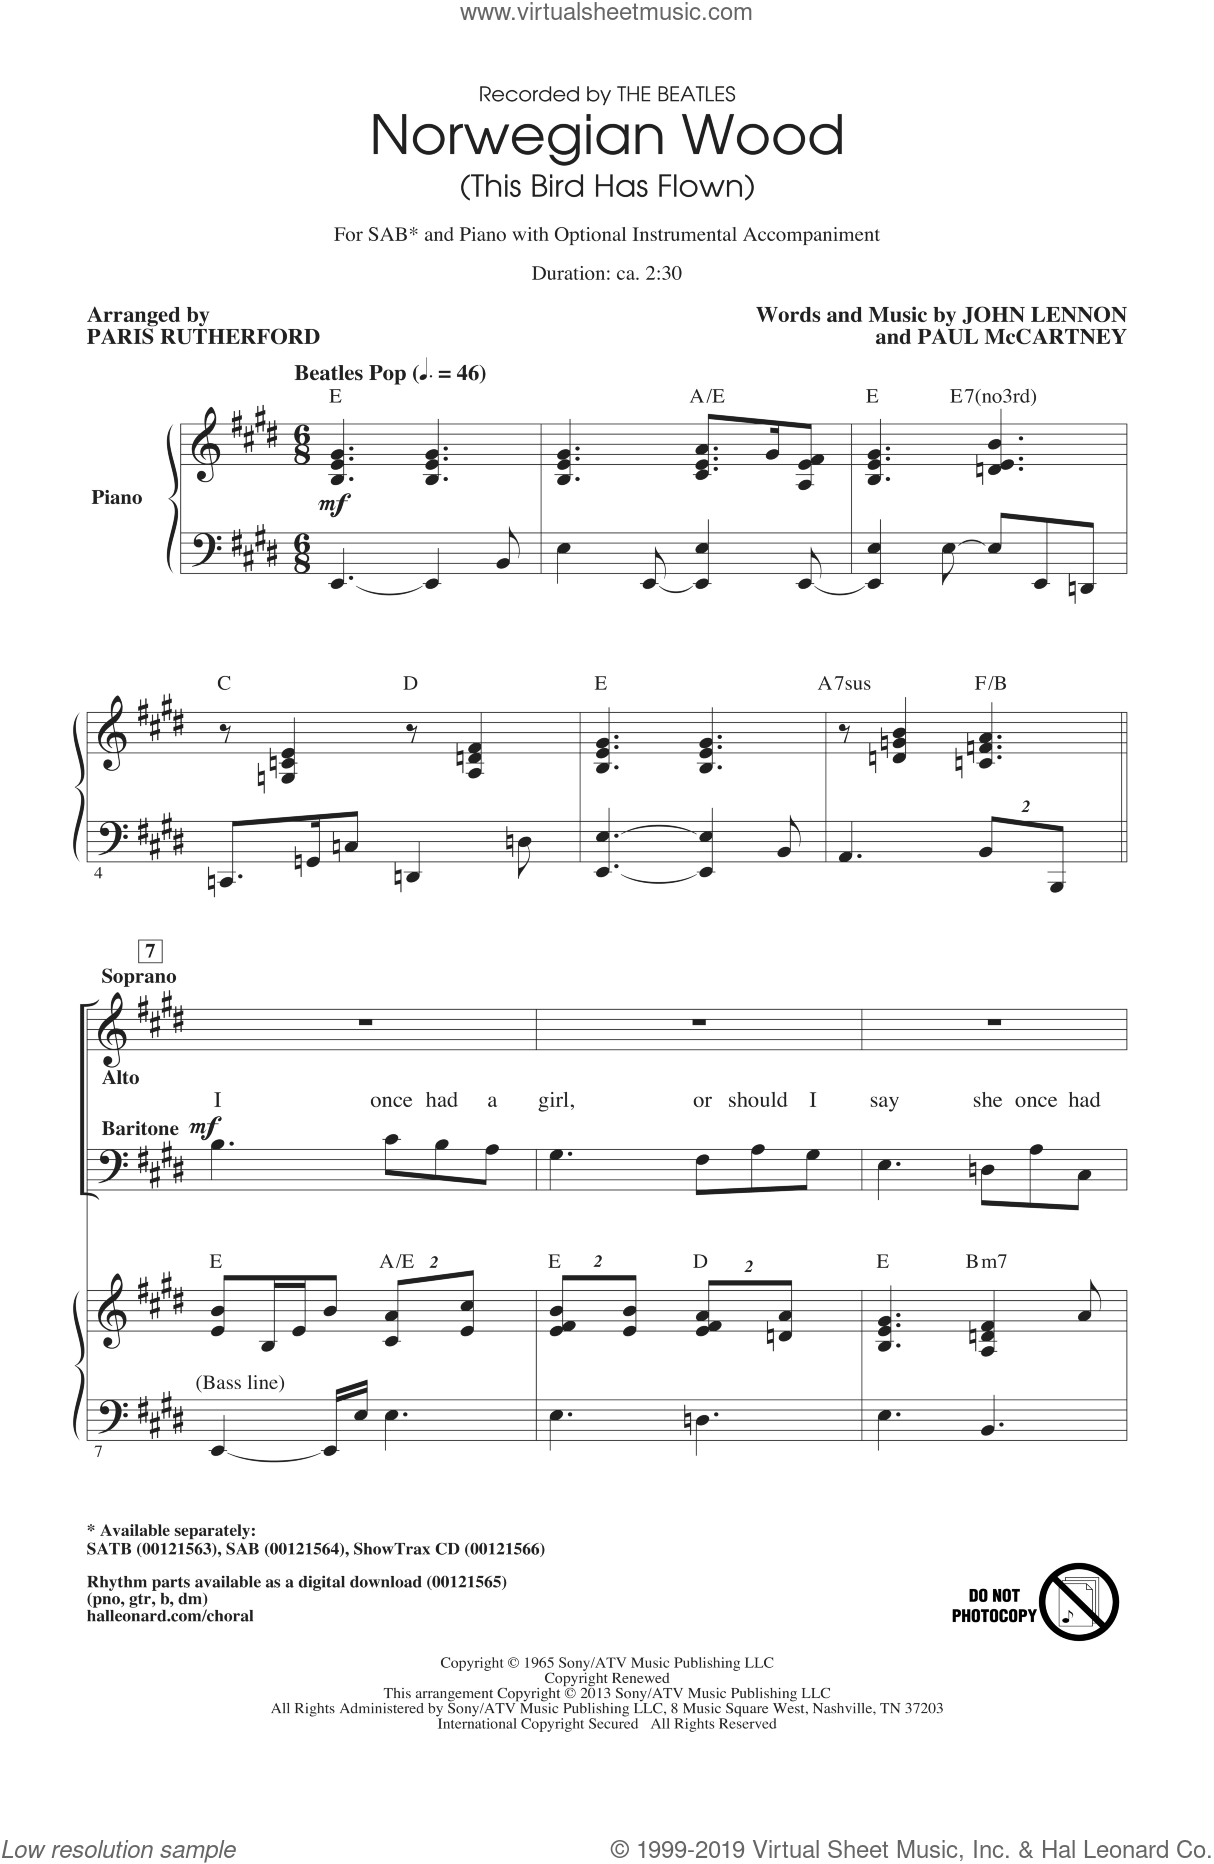 Norwegian Wood (This Bird Has Flown) sheet music for choir (SAB) by The Beatles and Paris Rutherford, intermediate. Score Image Preview.